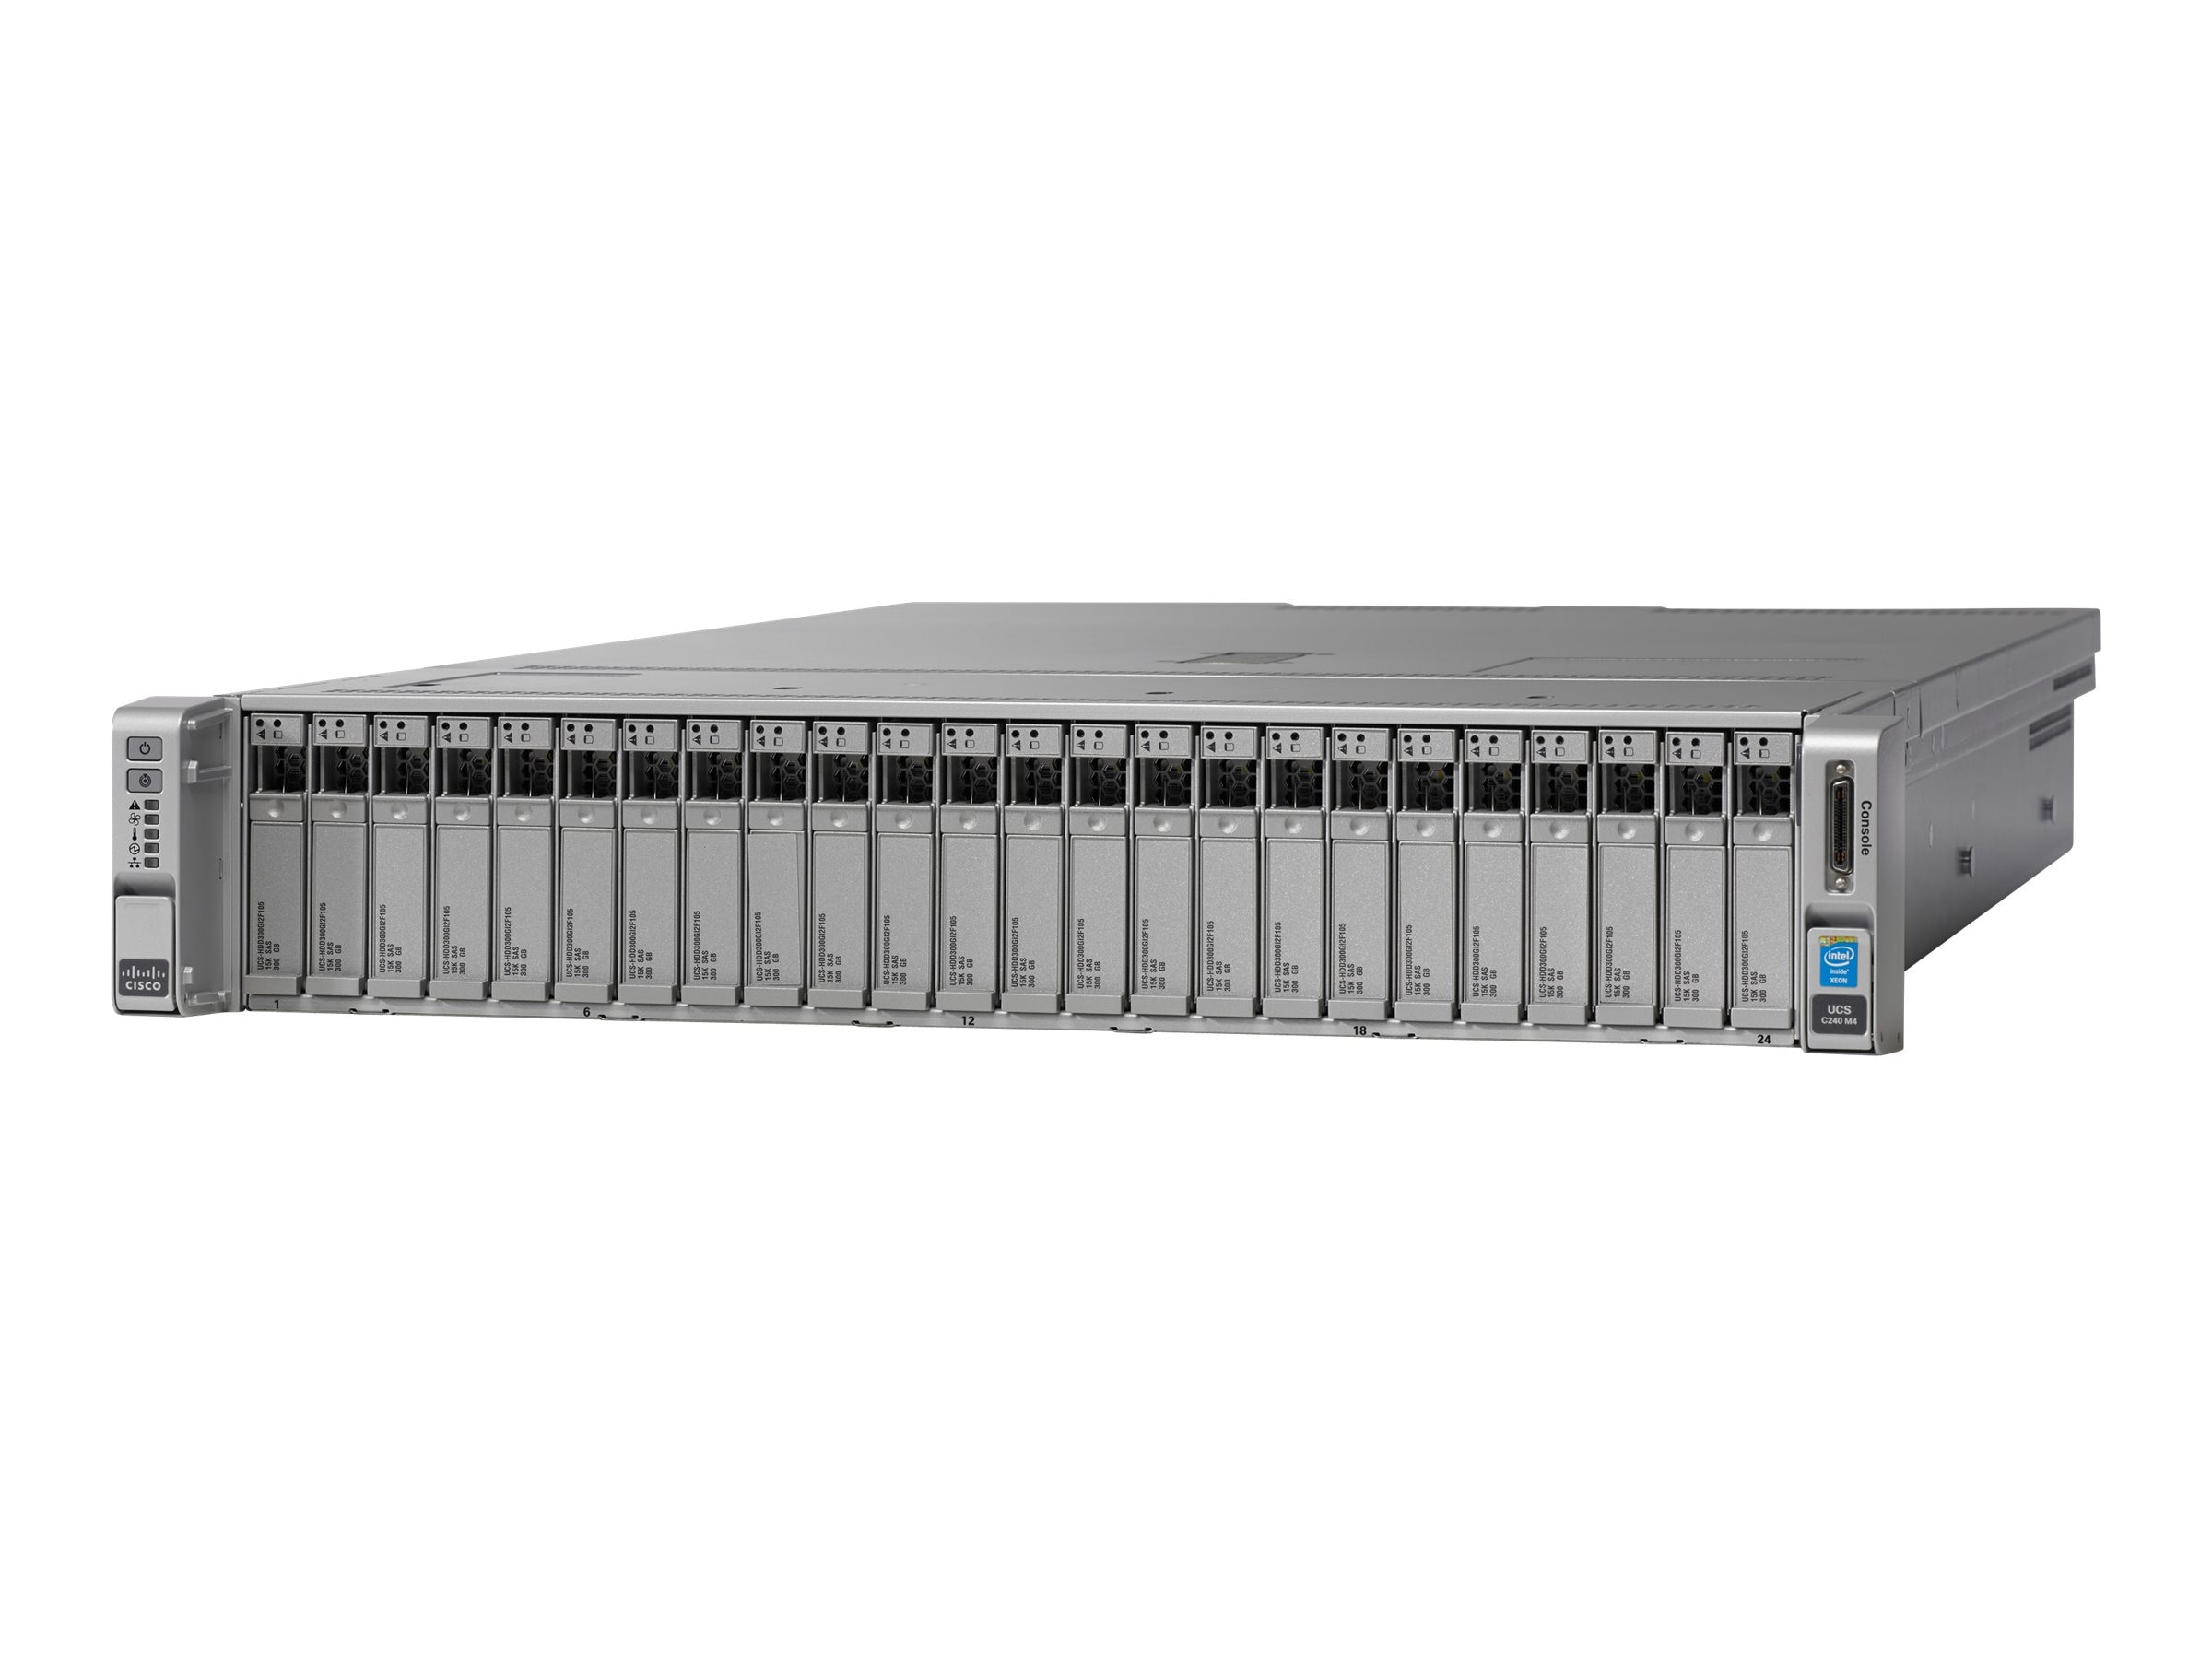 Cisco SmartPlay Select UCS C240 M4 (2x)Xeon E5-2630 v3 128GB VIC1227 2x1400W